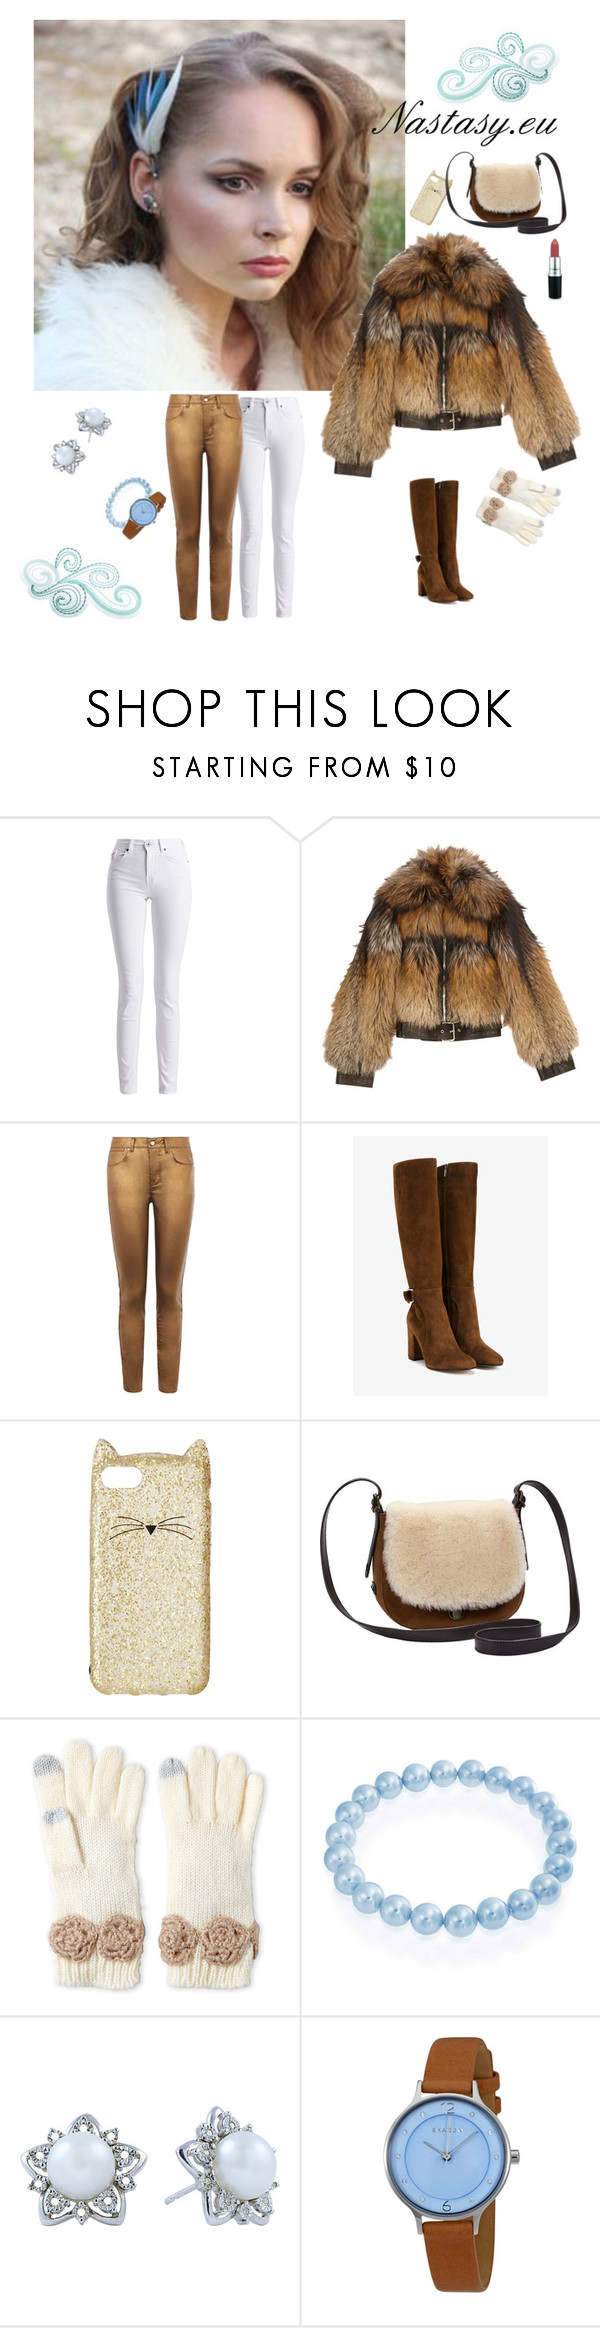 """Fresh Mix ♥"" by nastasy-eu ❤ liked on Polyvore featuring Barbour International, Alexander McQueen, Karen Millen, Gianvito Rossi, Kate Spade, UGG, Betsey Johnson, Bling Jewelry, Skagen and Winter"